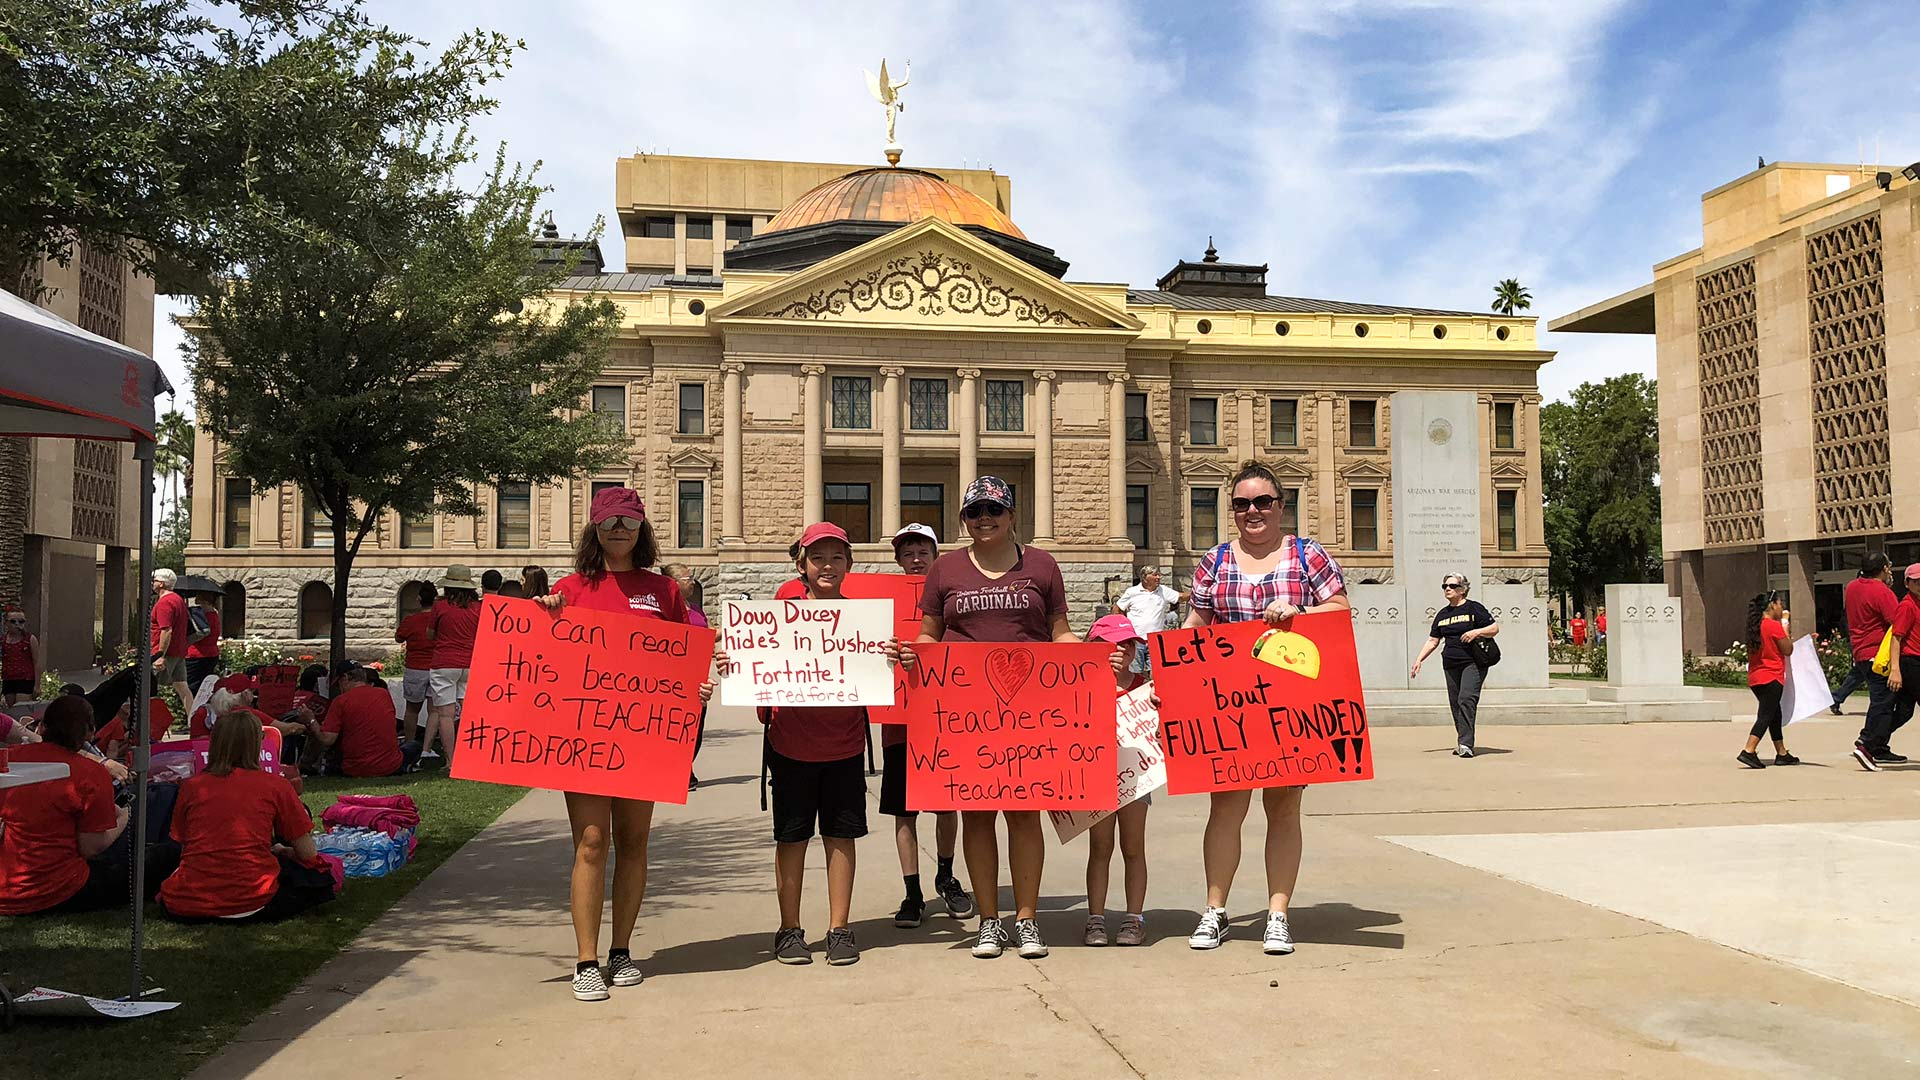 Demonstrators gather in front of the Arizona Capitol for a statewide teacher walkout, April 26, 2018.